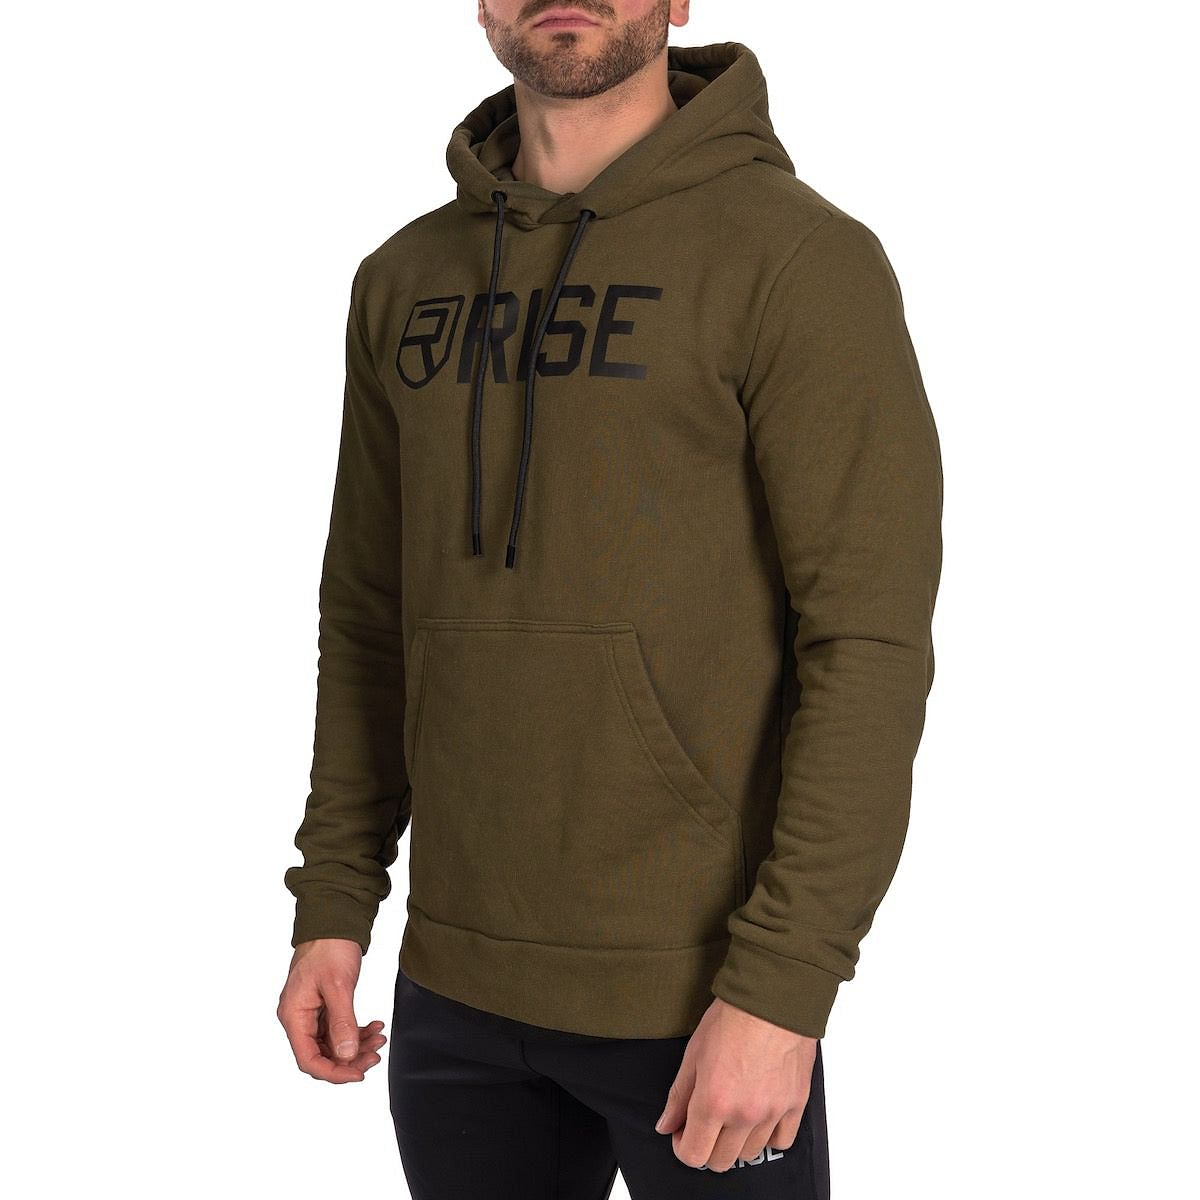 Signature Hoodie - Army Green